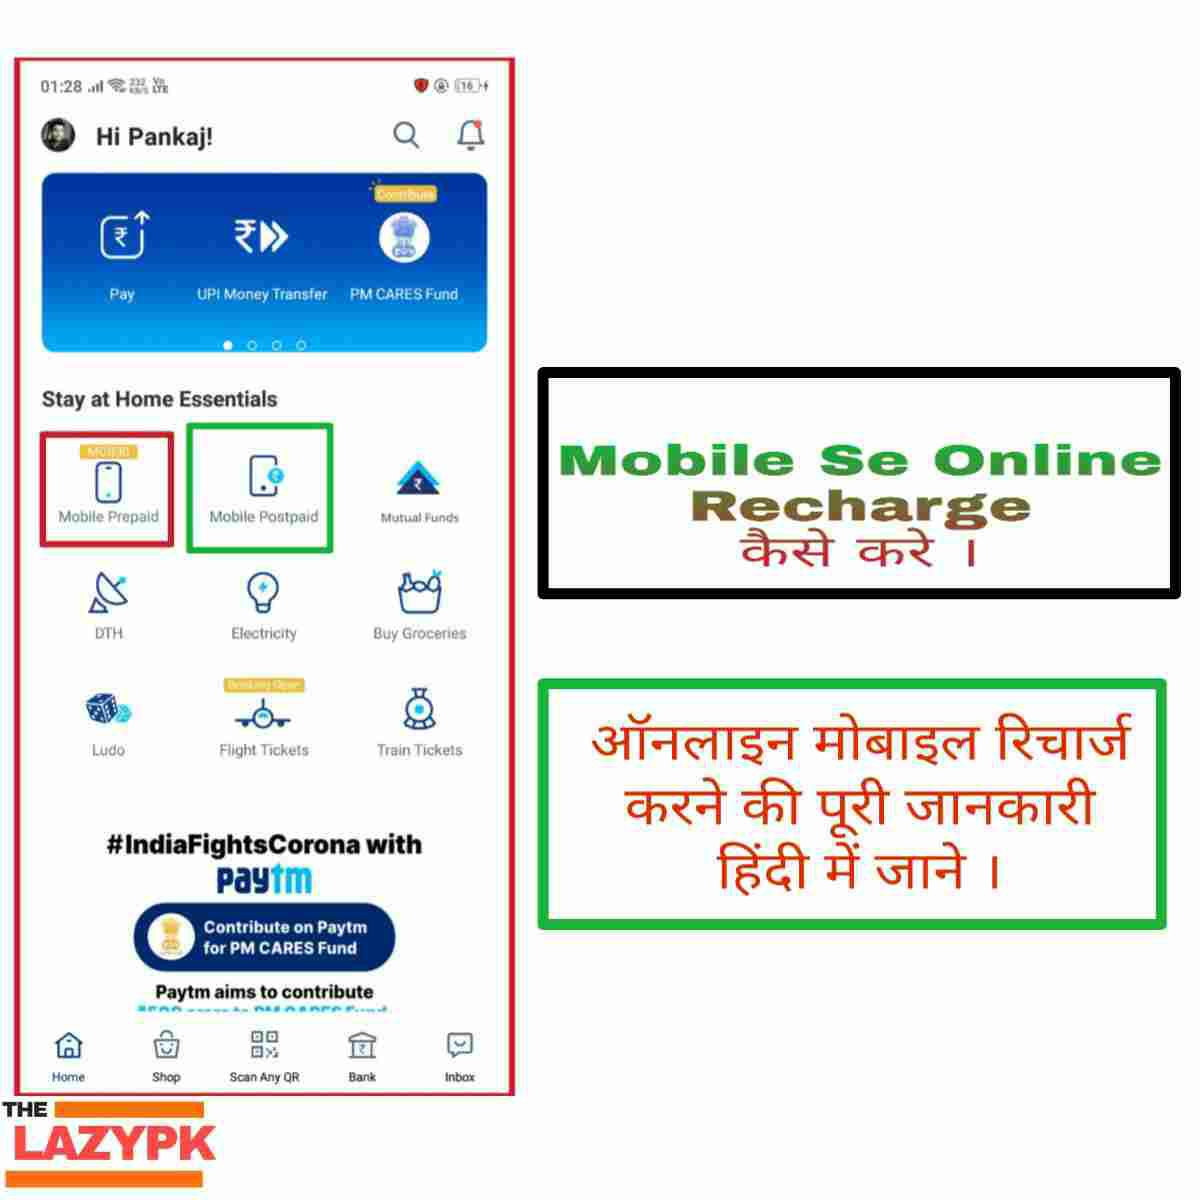 Mobile Se Online Recharge Kaise Kare